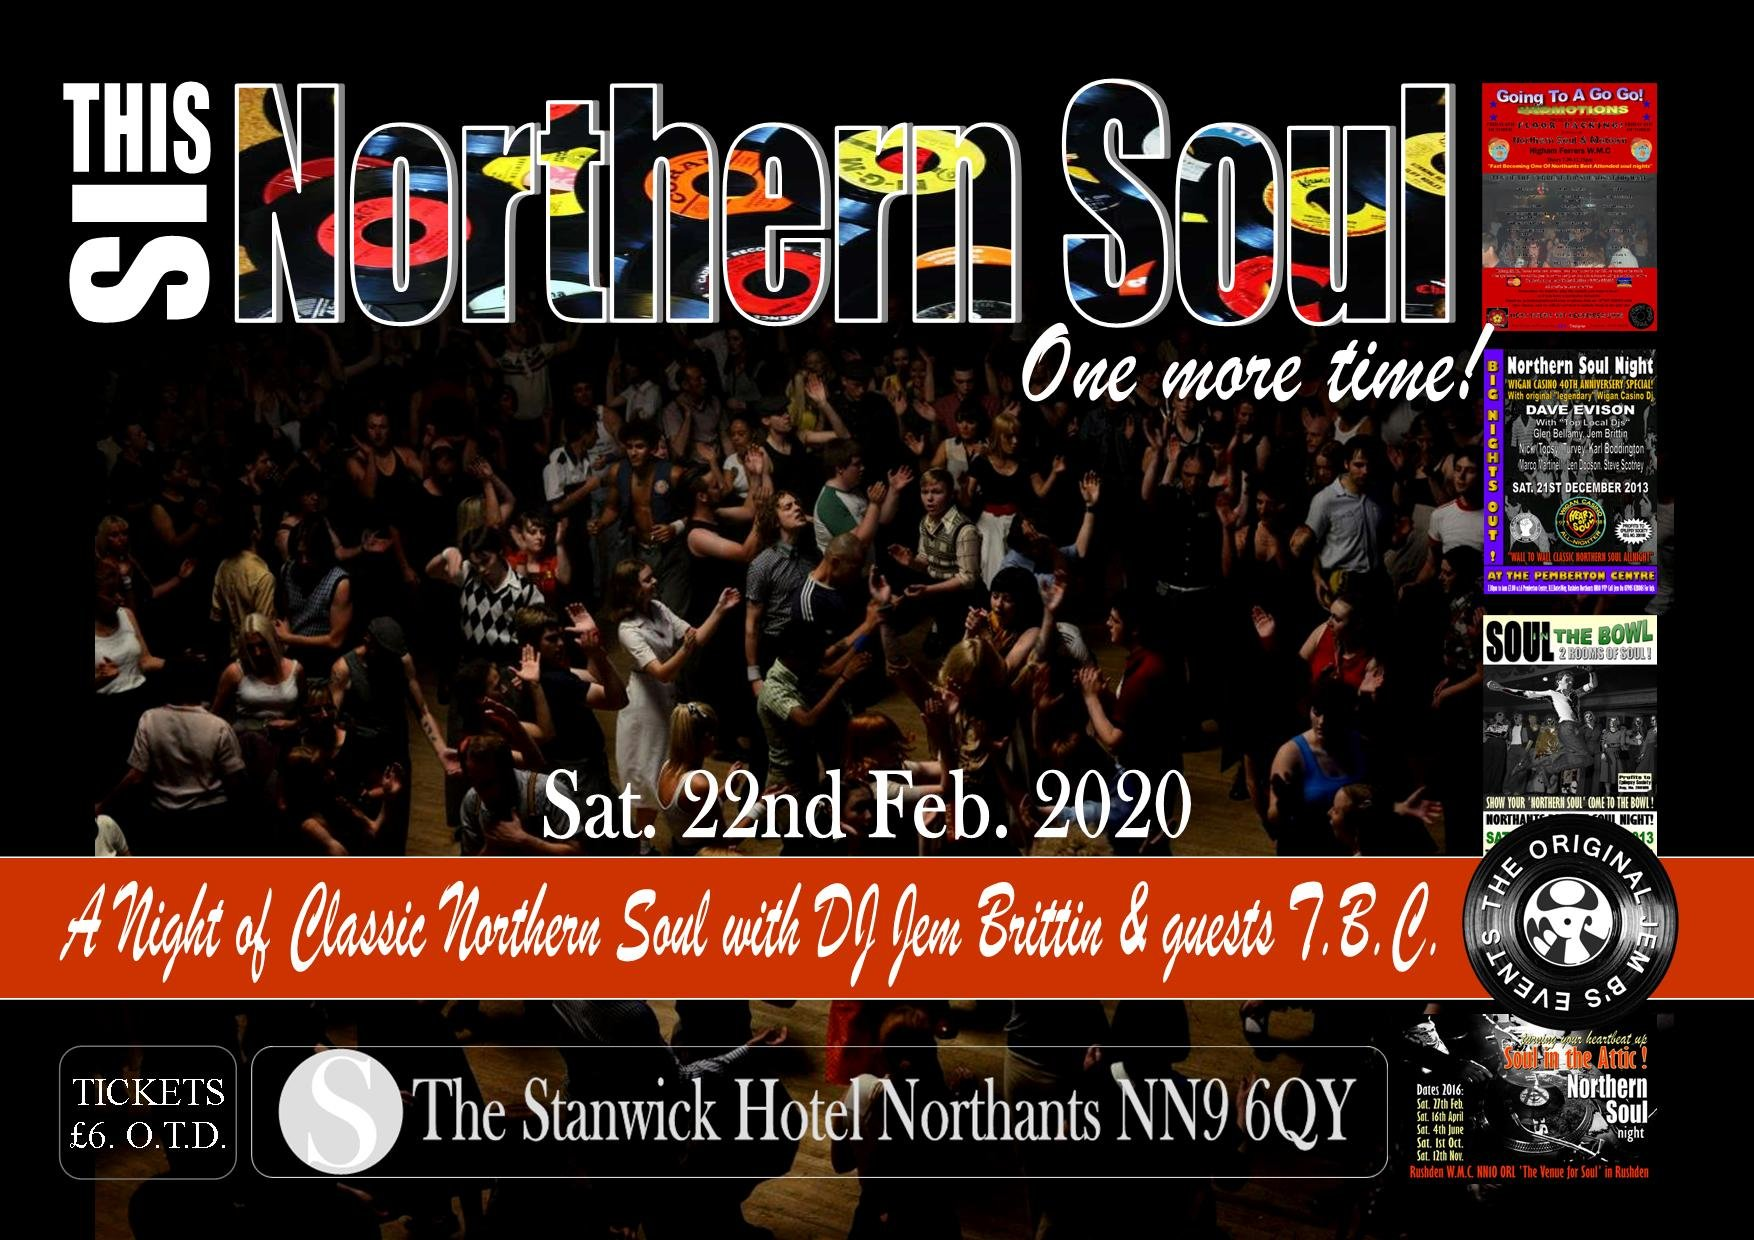 Classic Northern Soul At The Stanwick Hotel flyer